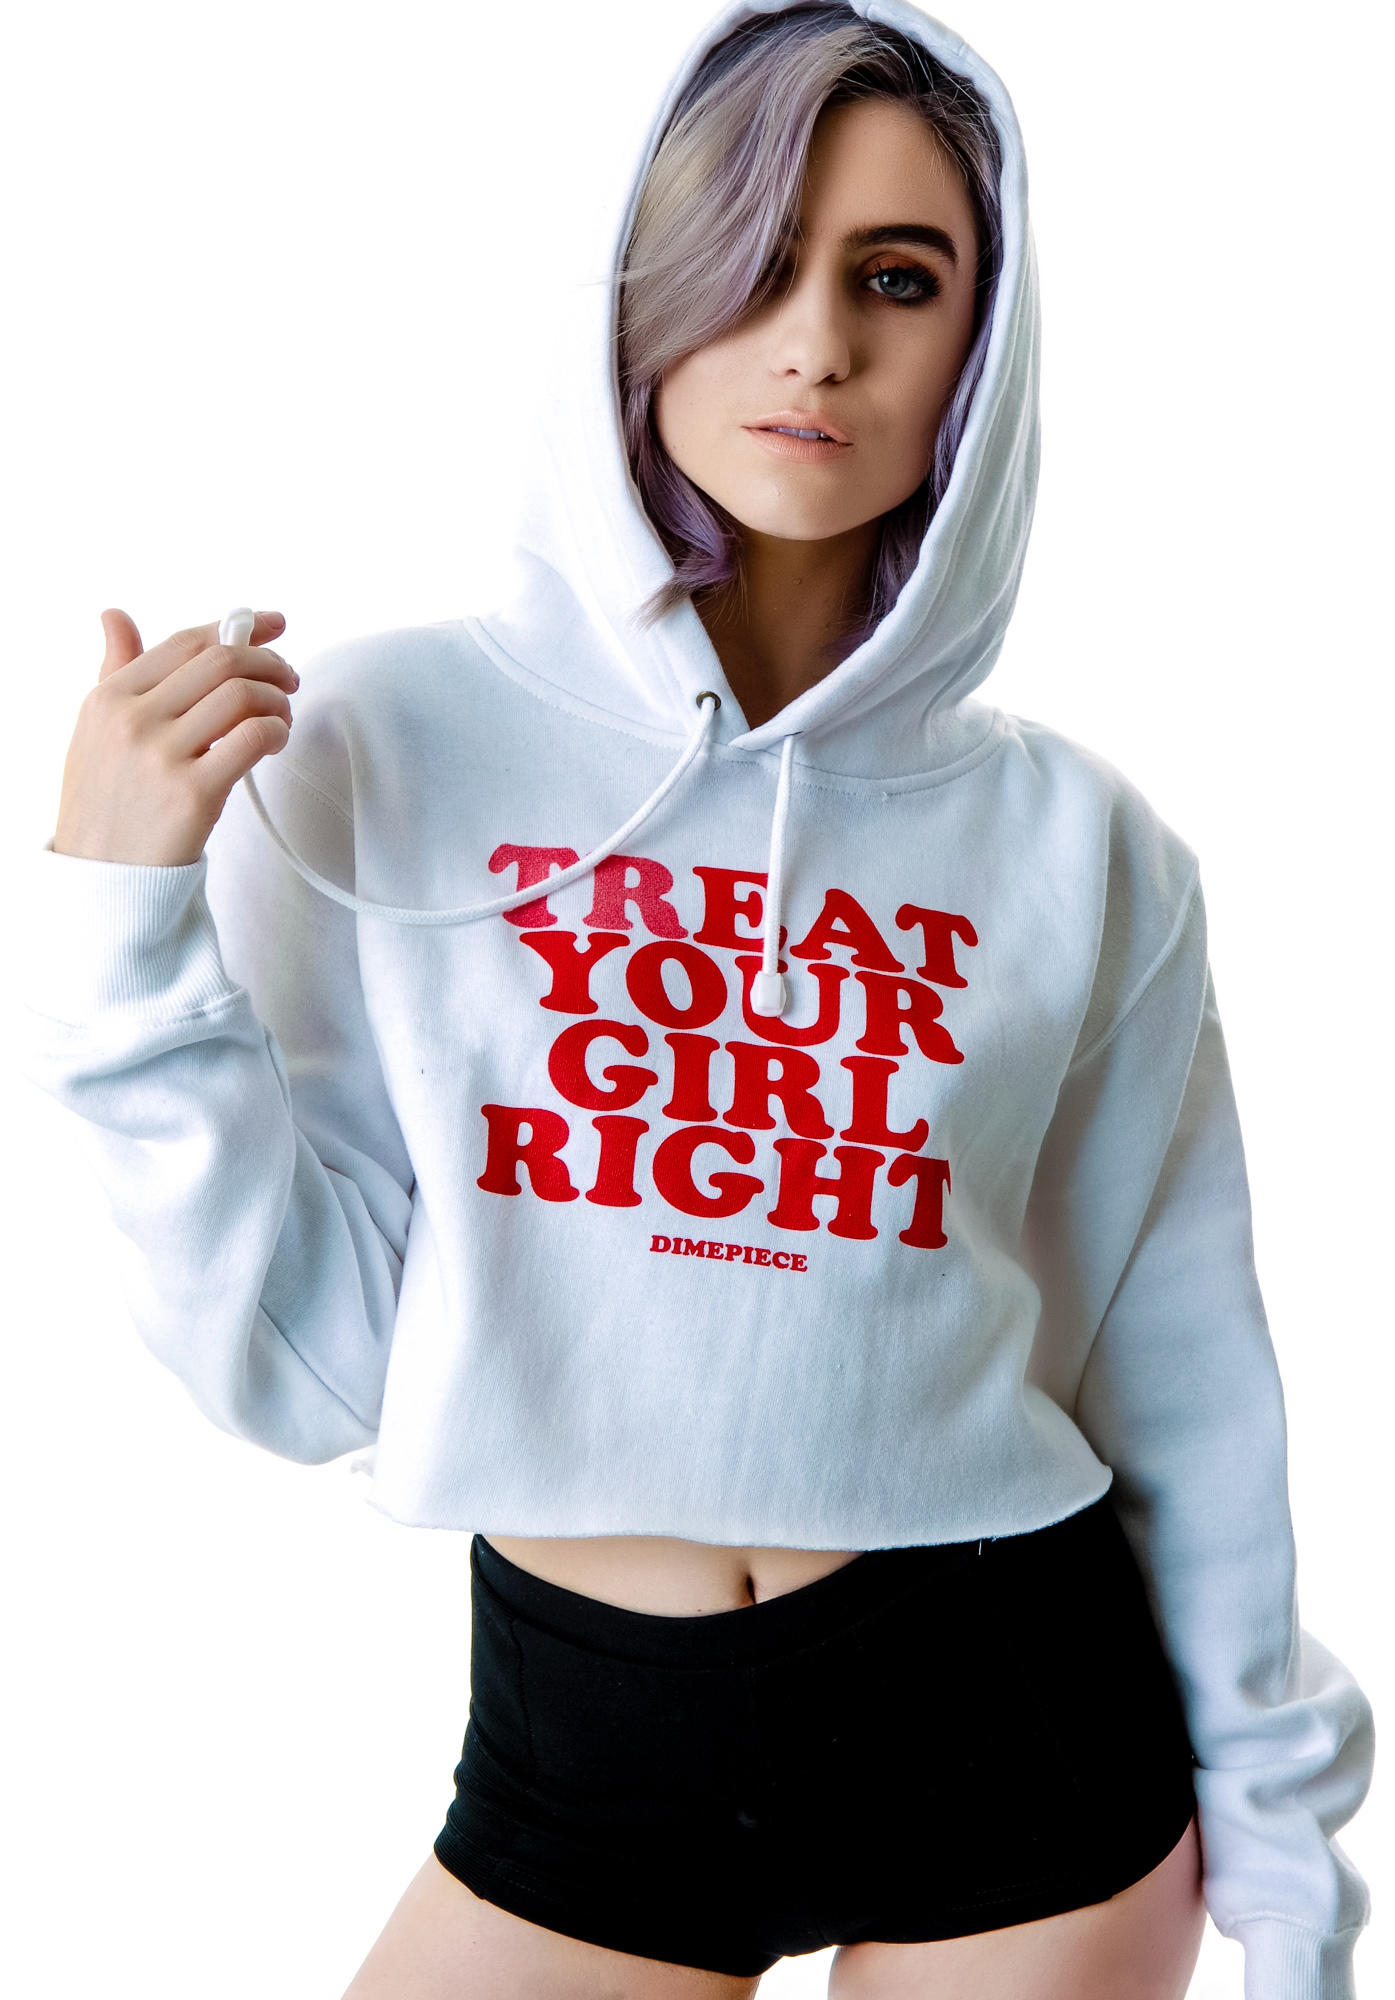 Home Decor On A Dime Dimepiece Treat Your Girl Right Hoodie From Dolls Kill